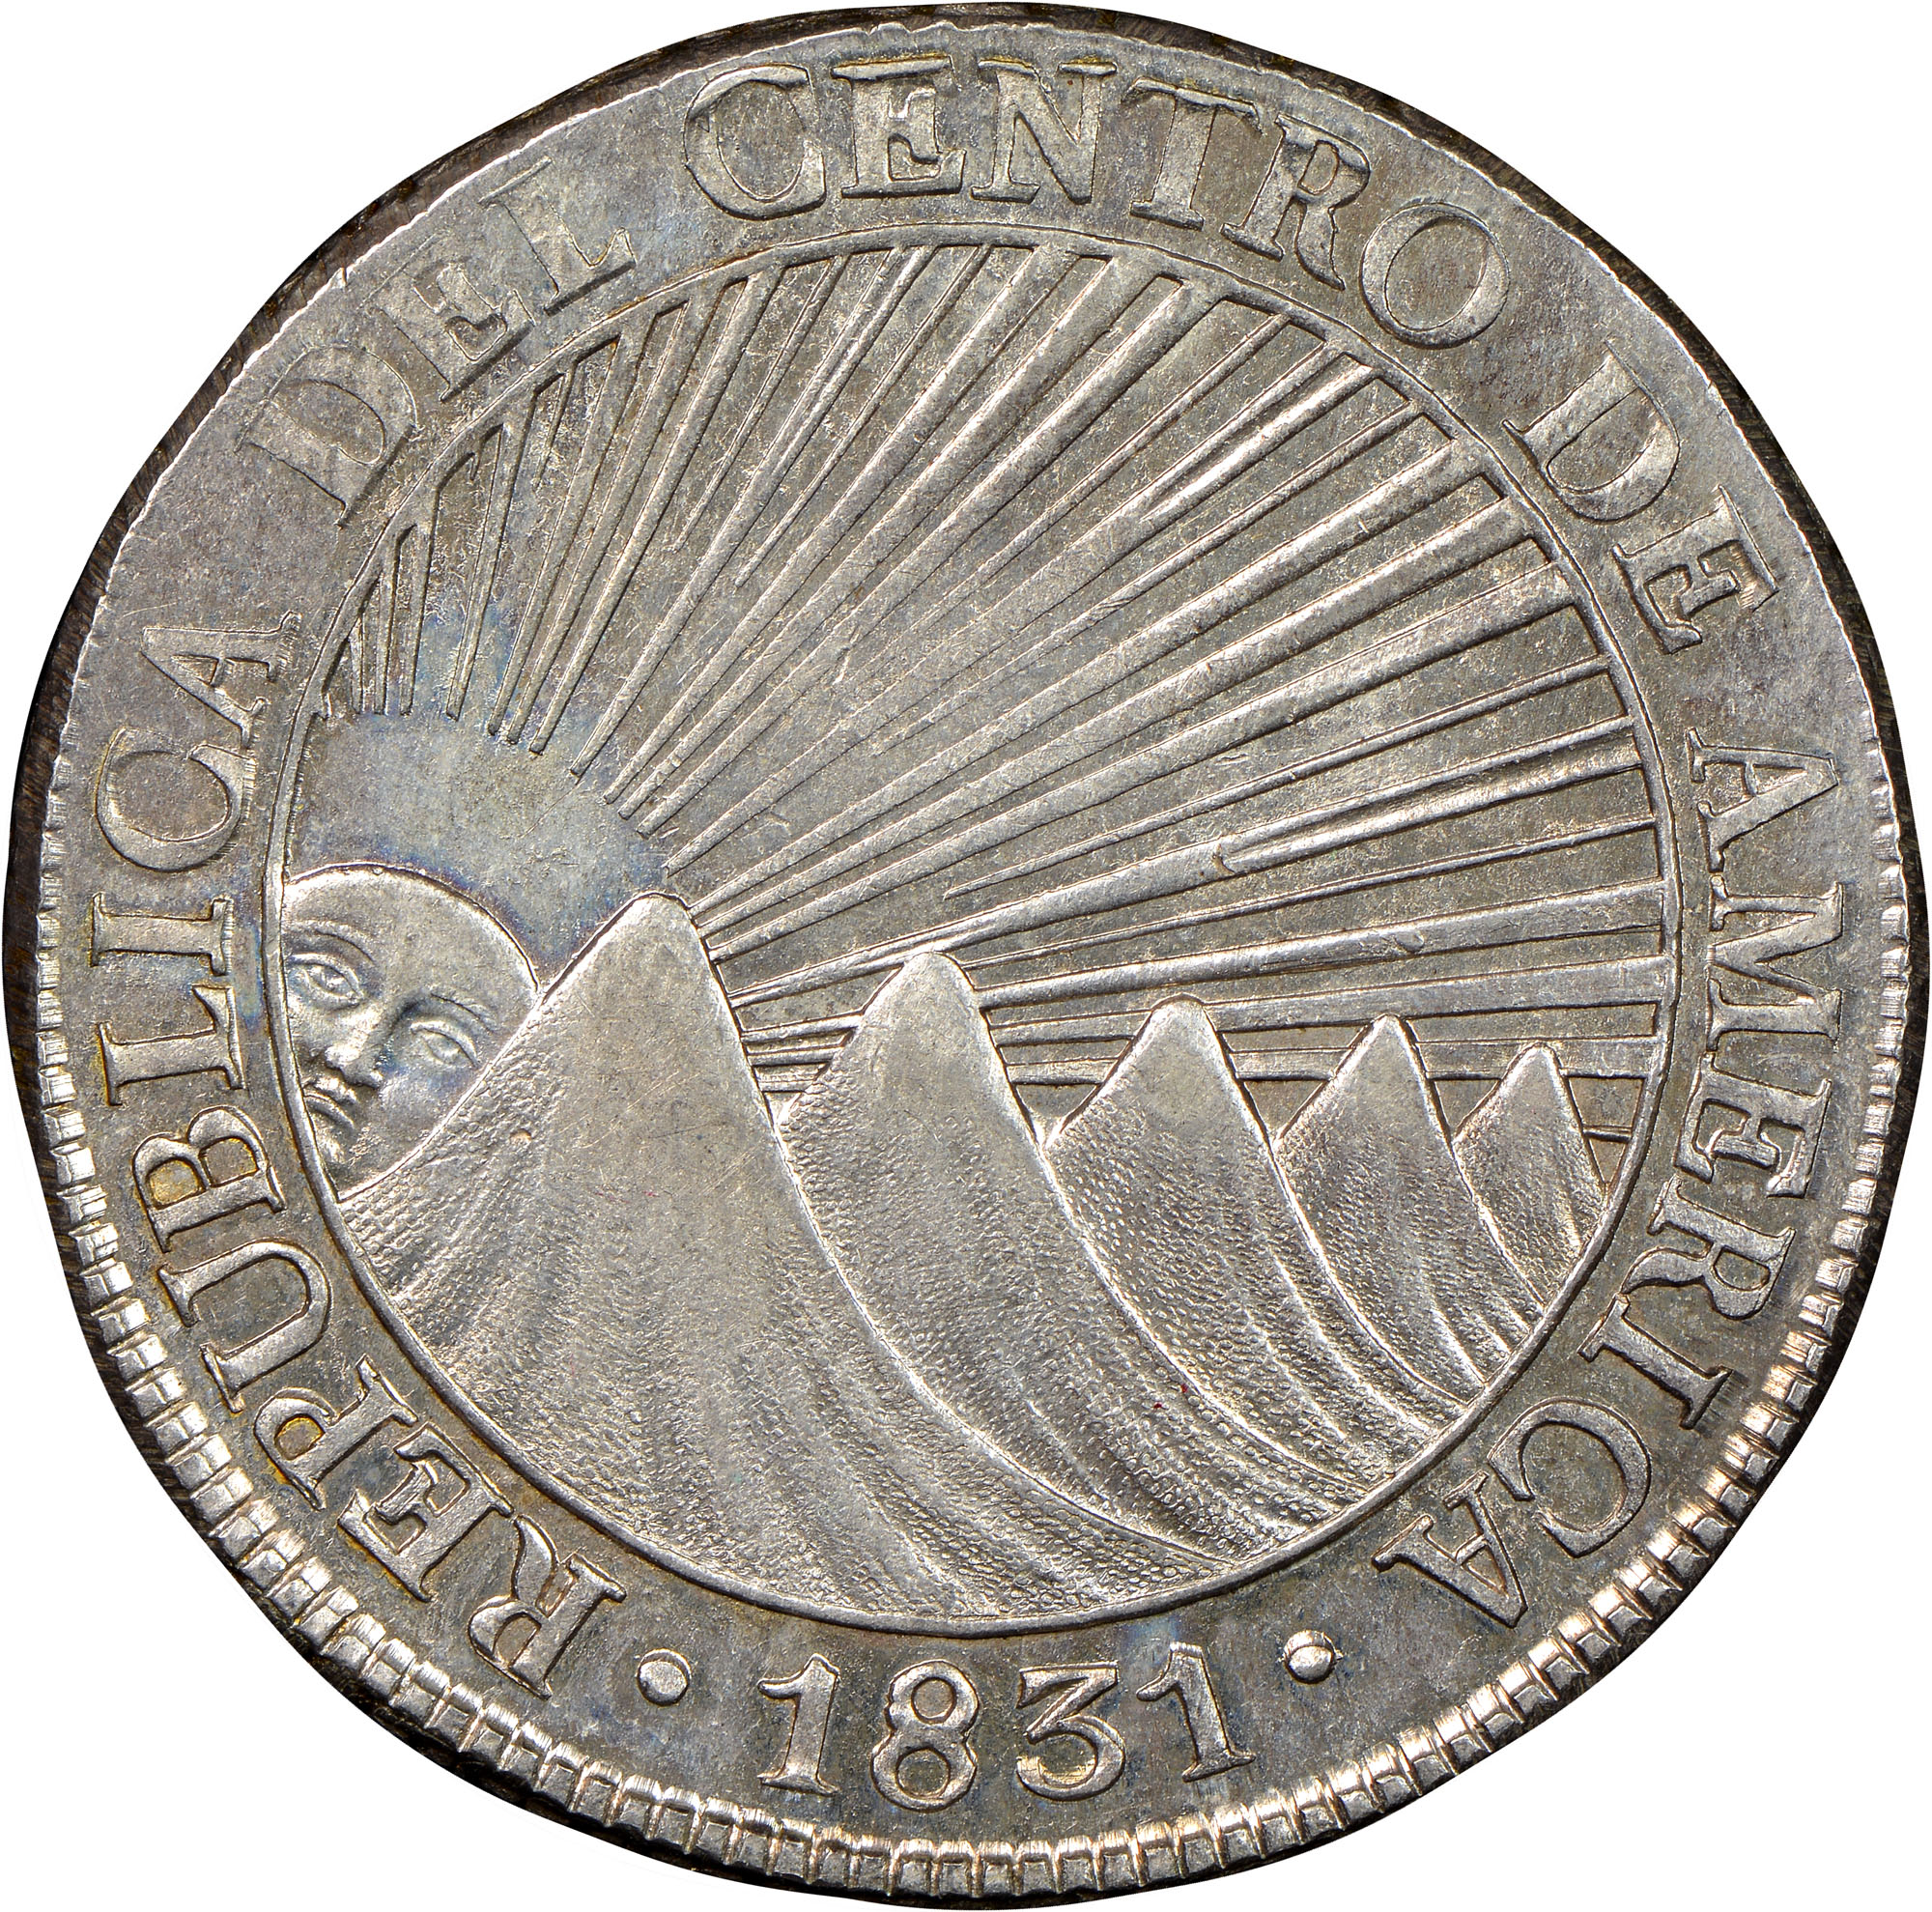 1831 Central American Republic 8 Reales obverse